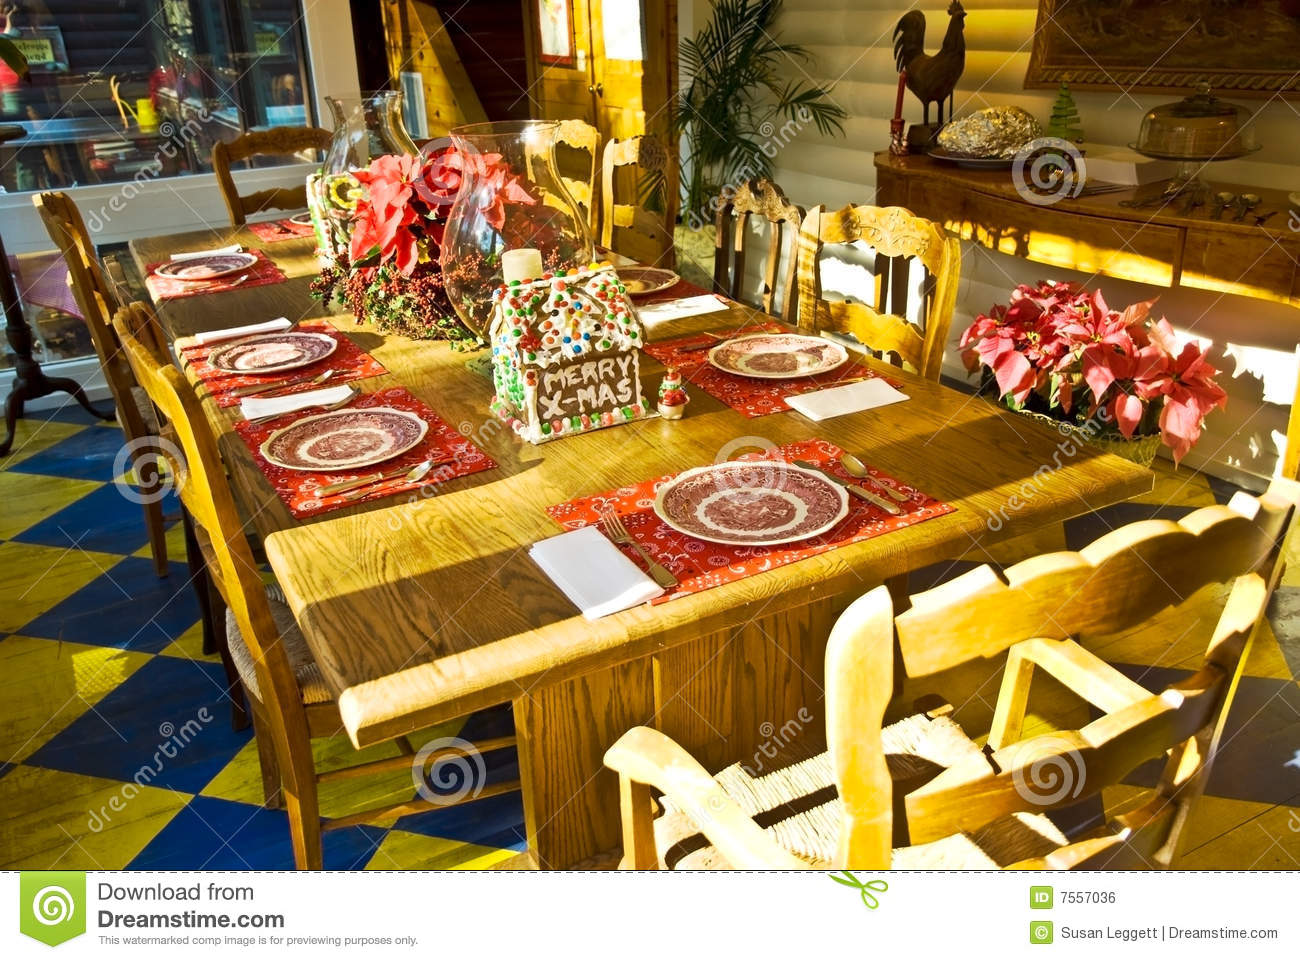 Dining Table/Setting & Dining Table/Setting stock photo. Image of holiday industry - 7557036